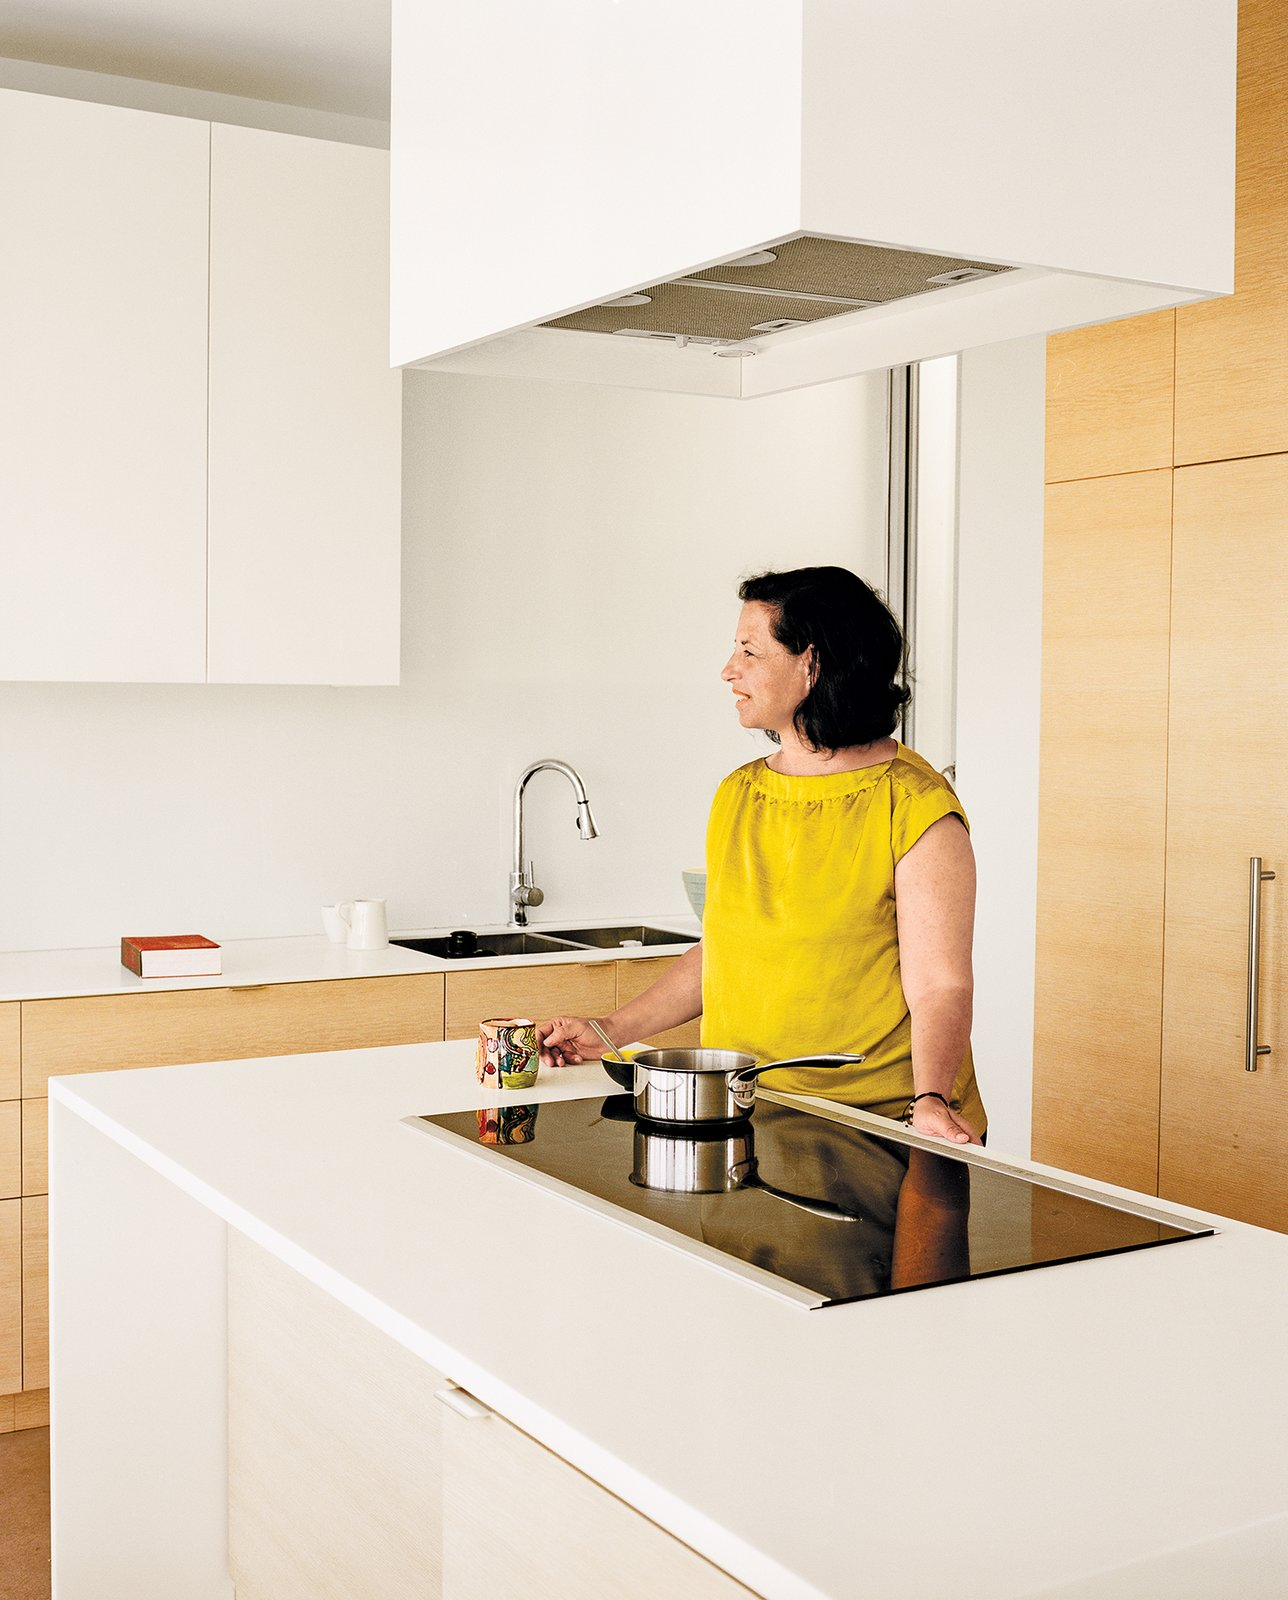 The kitchen has a Bosch induction range and hood surrounded by a box made by the architect. The faucet is by Blu Bathworks.  Photo 5 of 7 in A Modern Multiunit Prefab Prototype in Vancouver